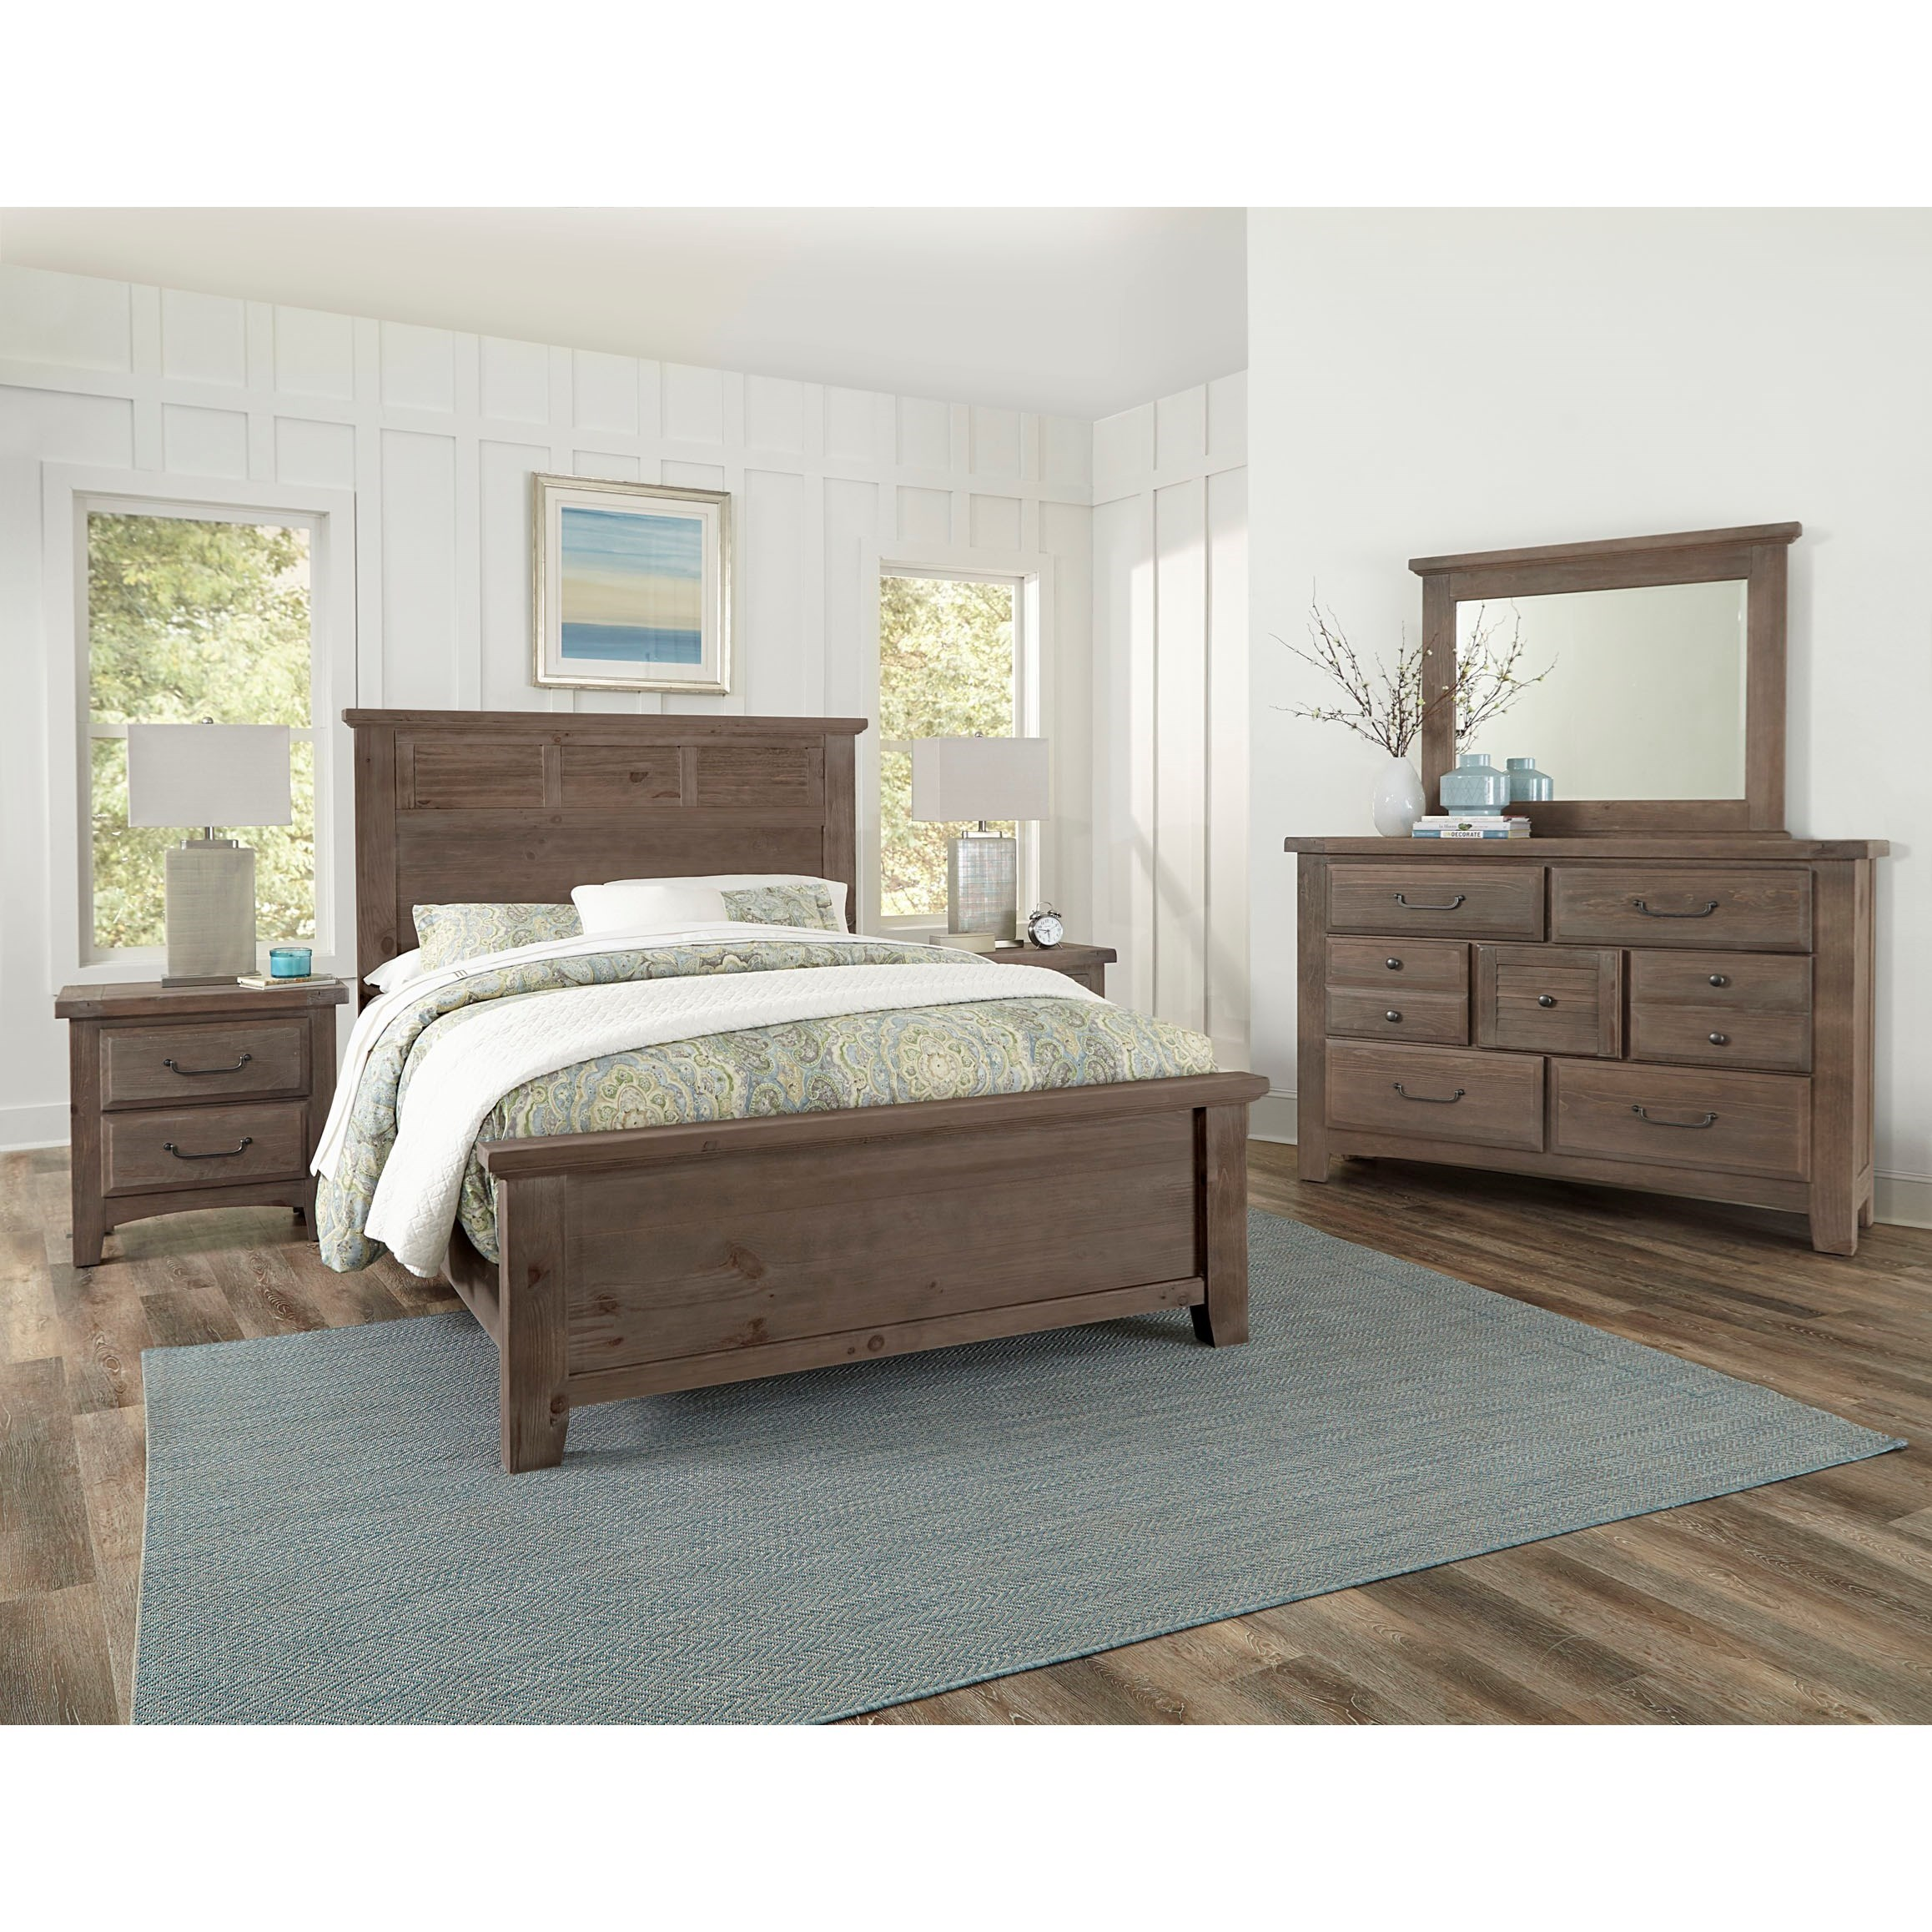 Sawmill King Bedroom Group by Vaughan Bassett at Johnny Janosik